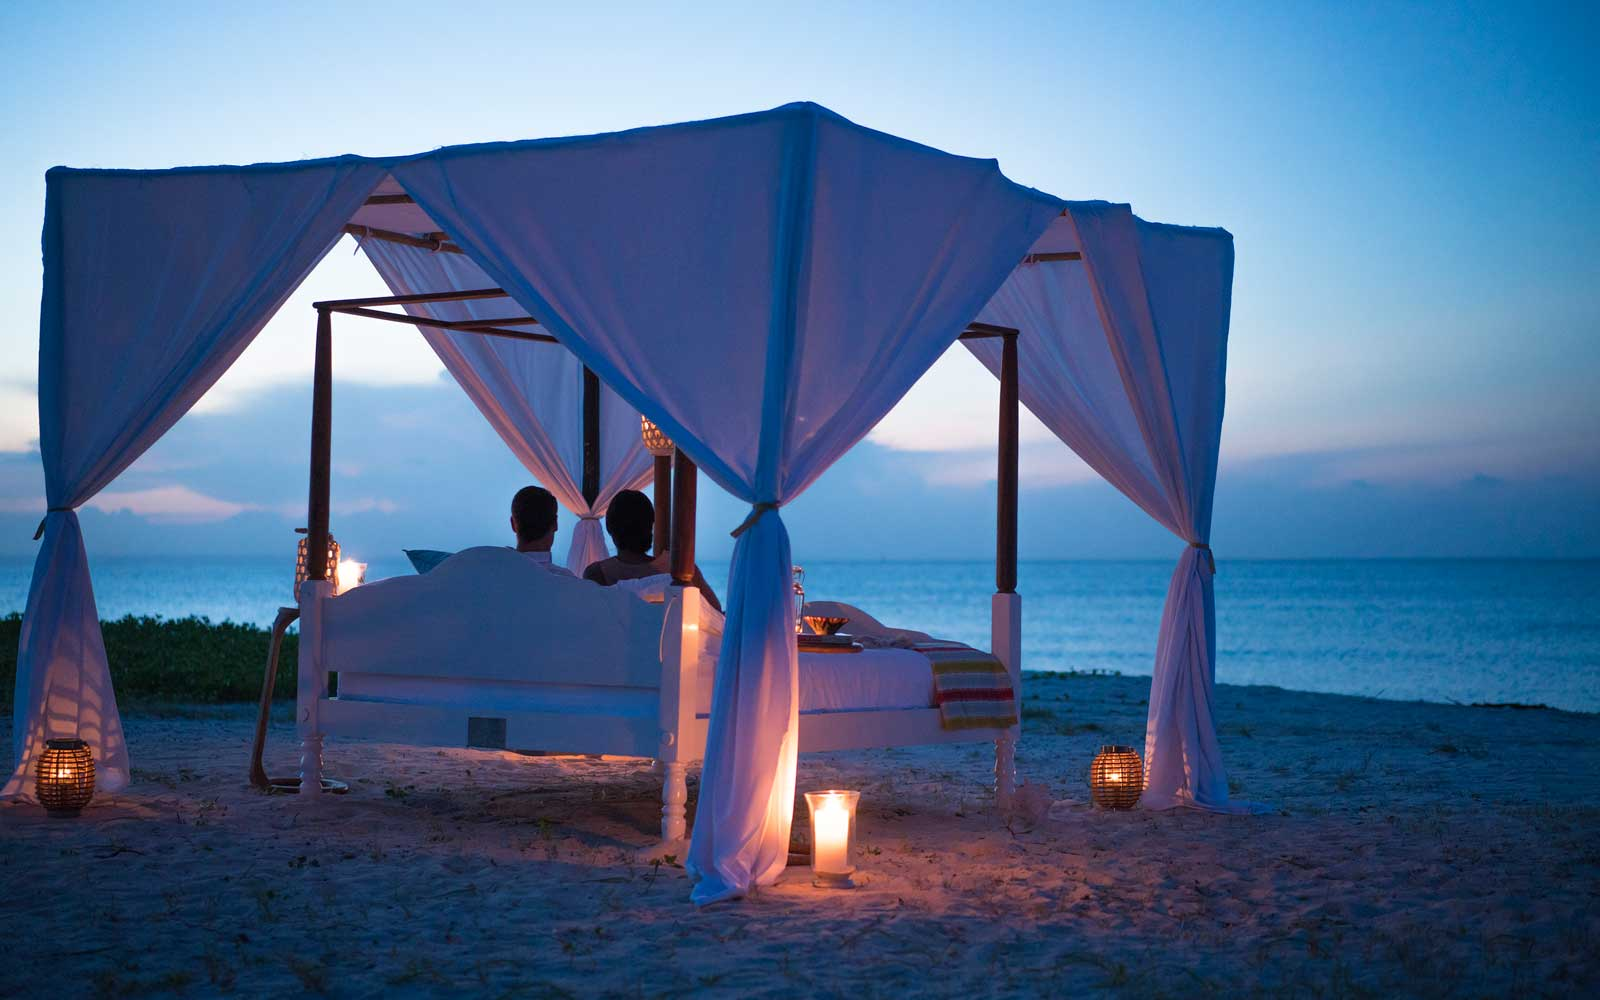 There's No Better View of the Night's Sky Than From a 'Star Bed' on an Island in the Indian Ocean